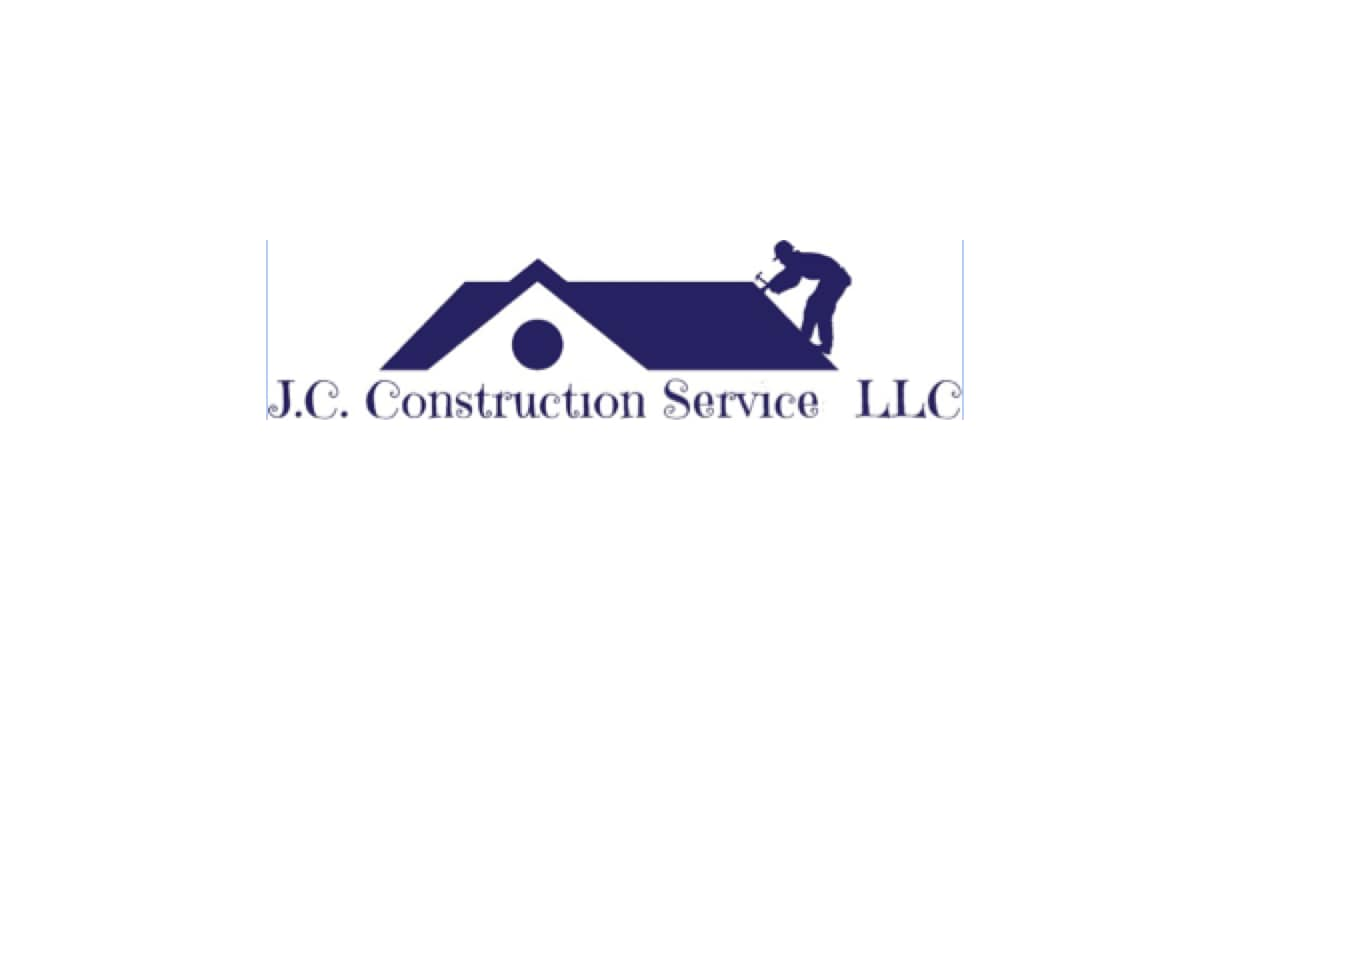 J.C. Construction Service LLC